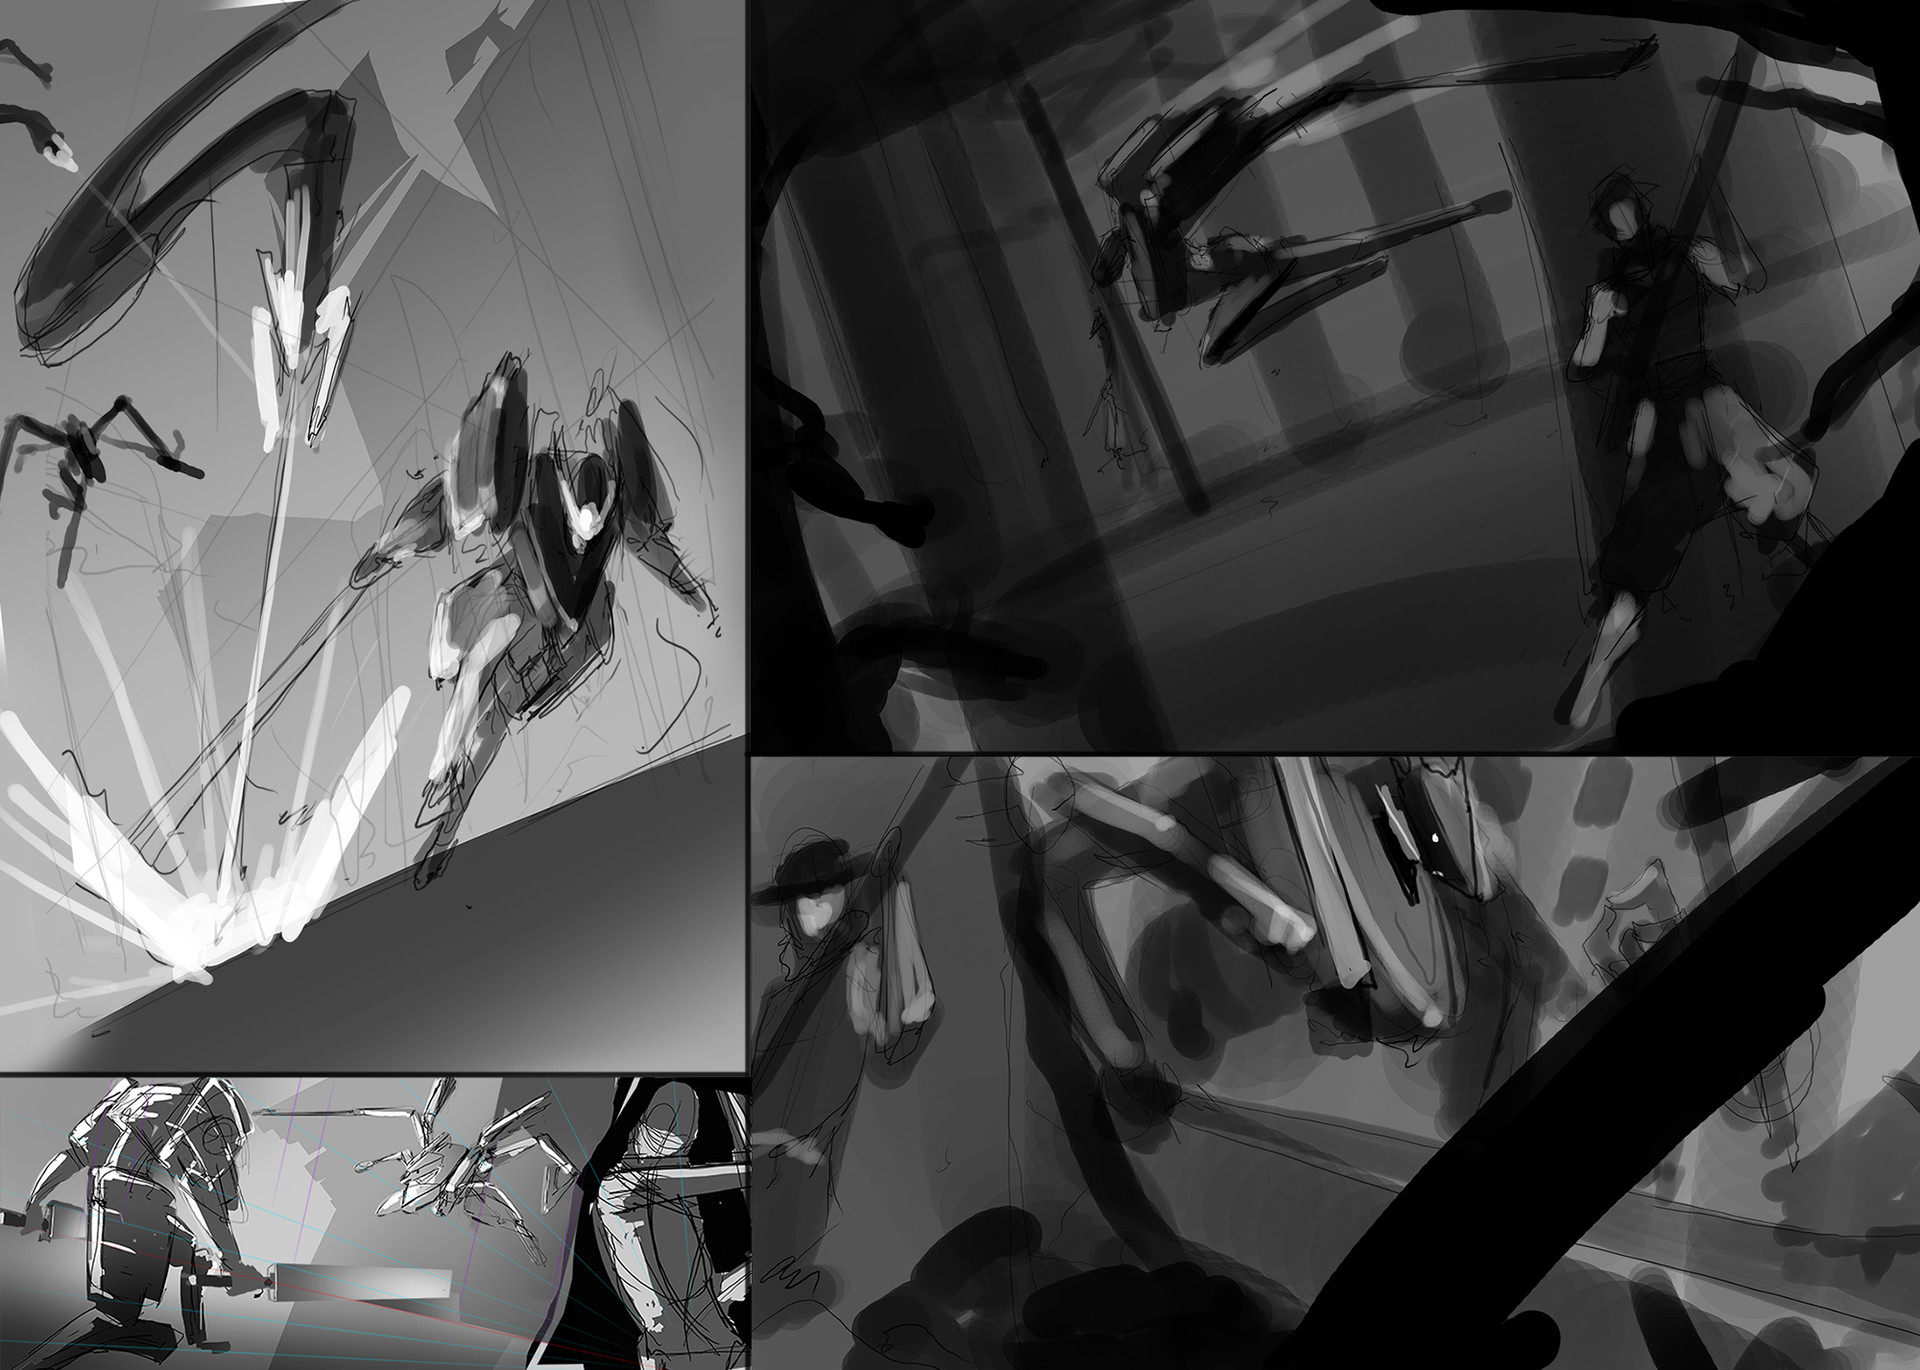 Composition Sketches for final image